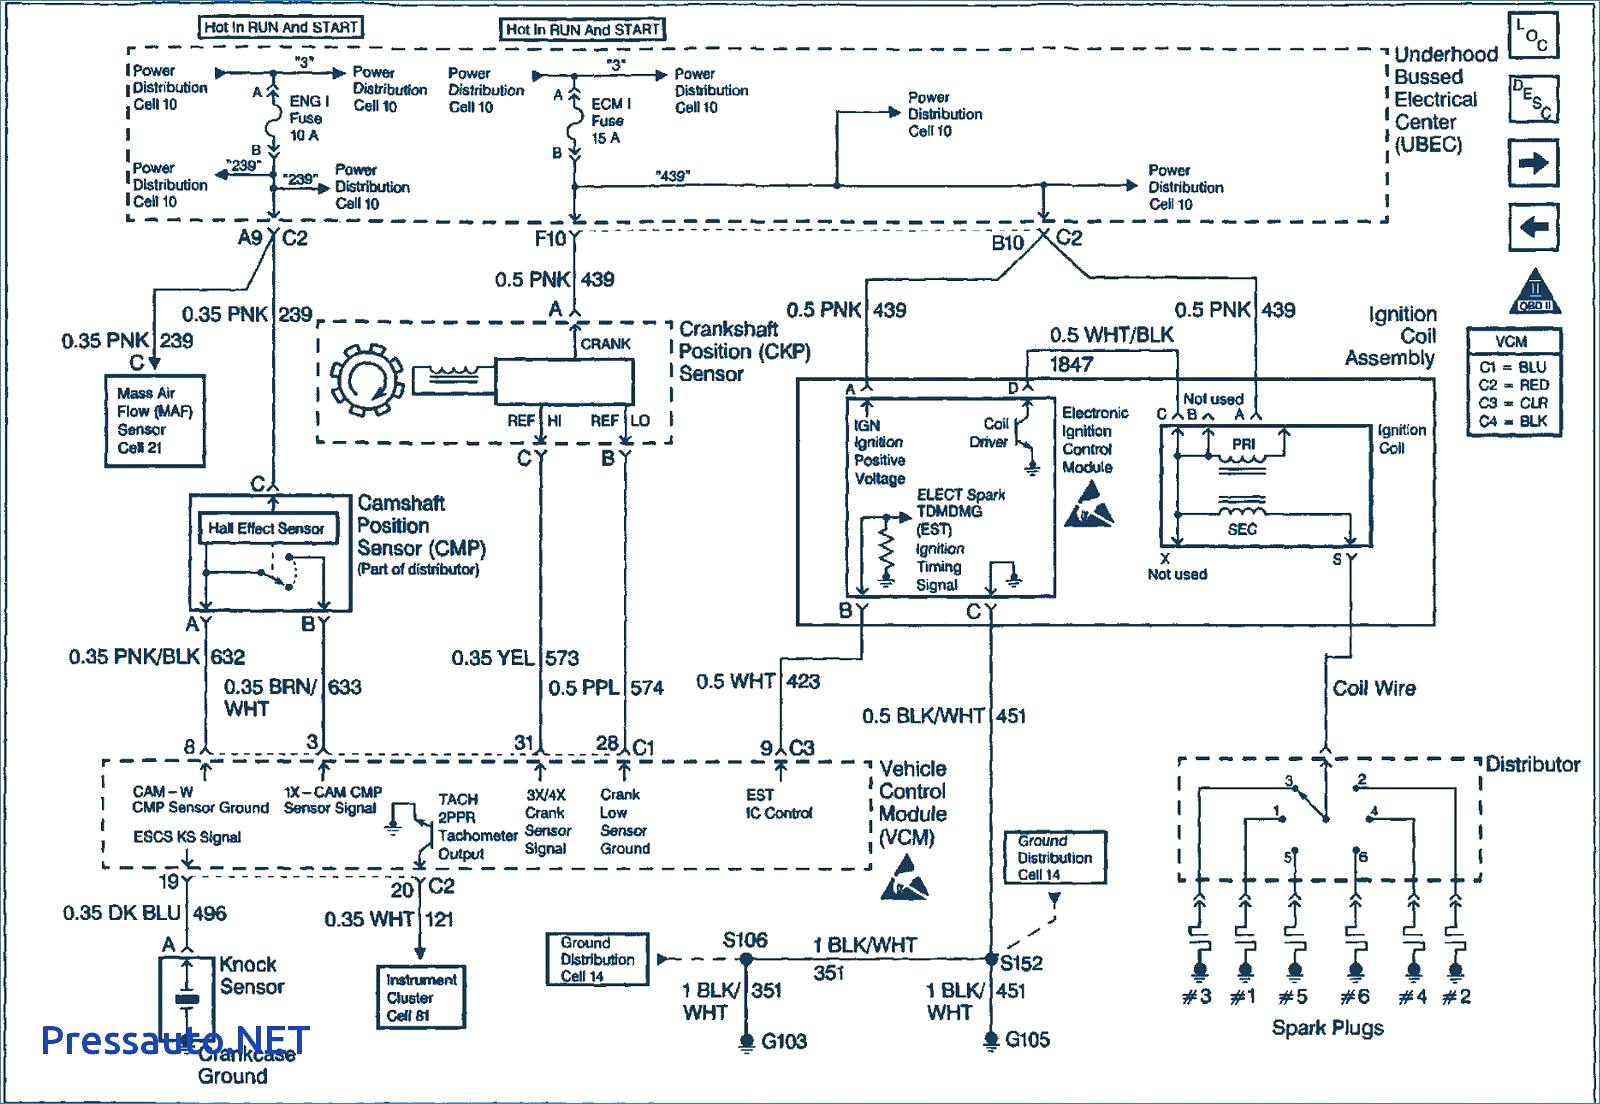 Wiring Diagram Trailer Hitch Who The Equivalent - Data Wiring - Trailer Hitch Wiring Diagram